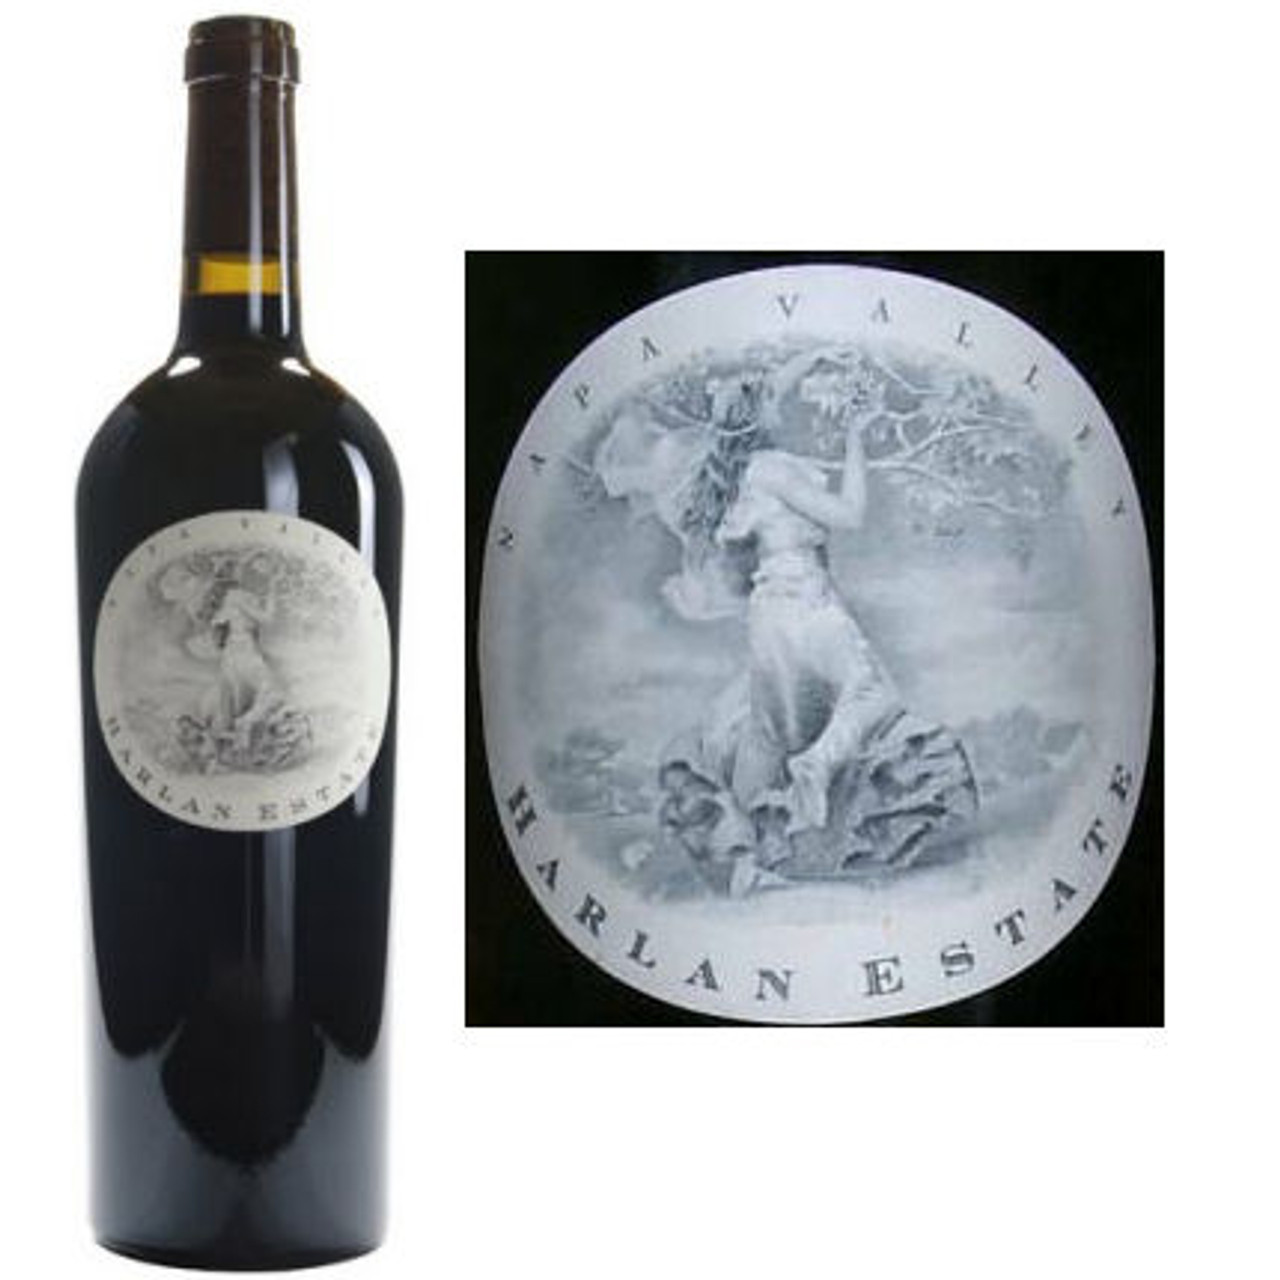 Harlan Estate Napa Proprietary Red Wine